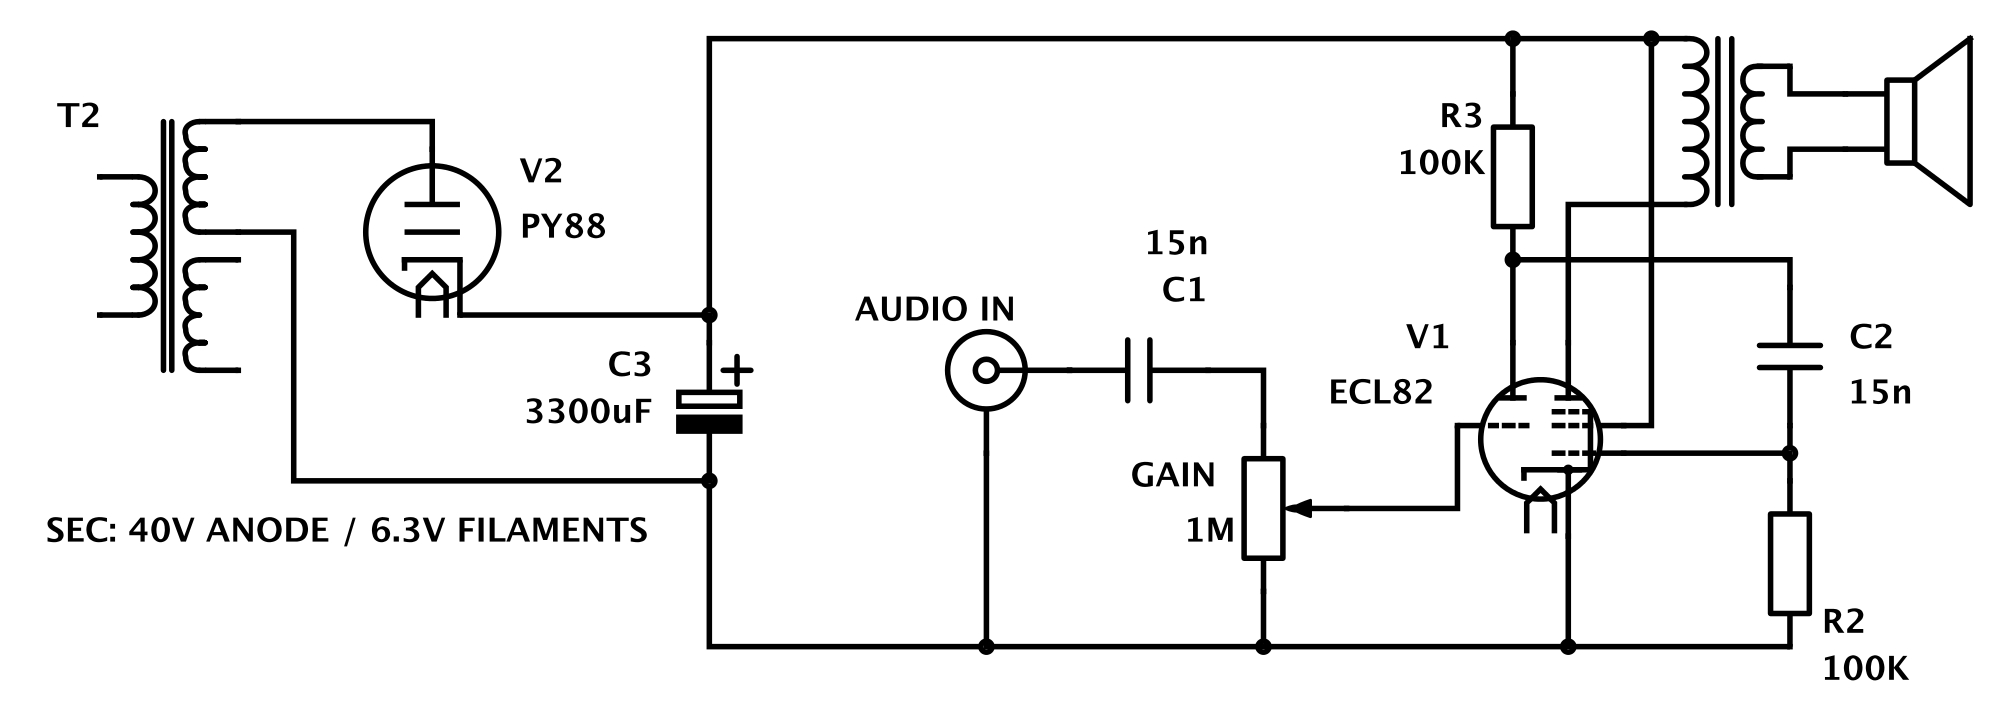 12v Diode Wiring Diagram Low Voltage Tube Amp Is Great For Beginners Hackaday Schematic